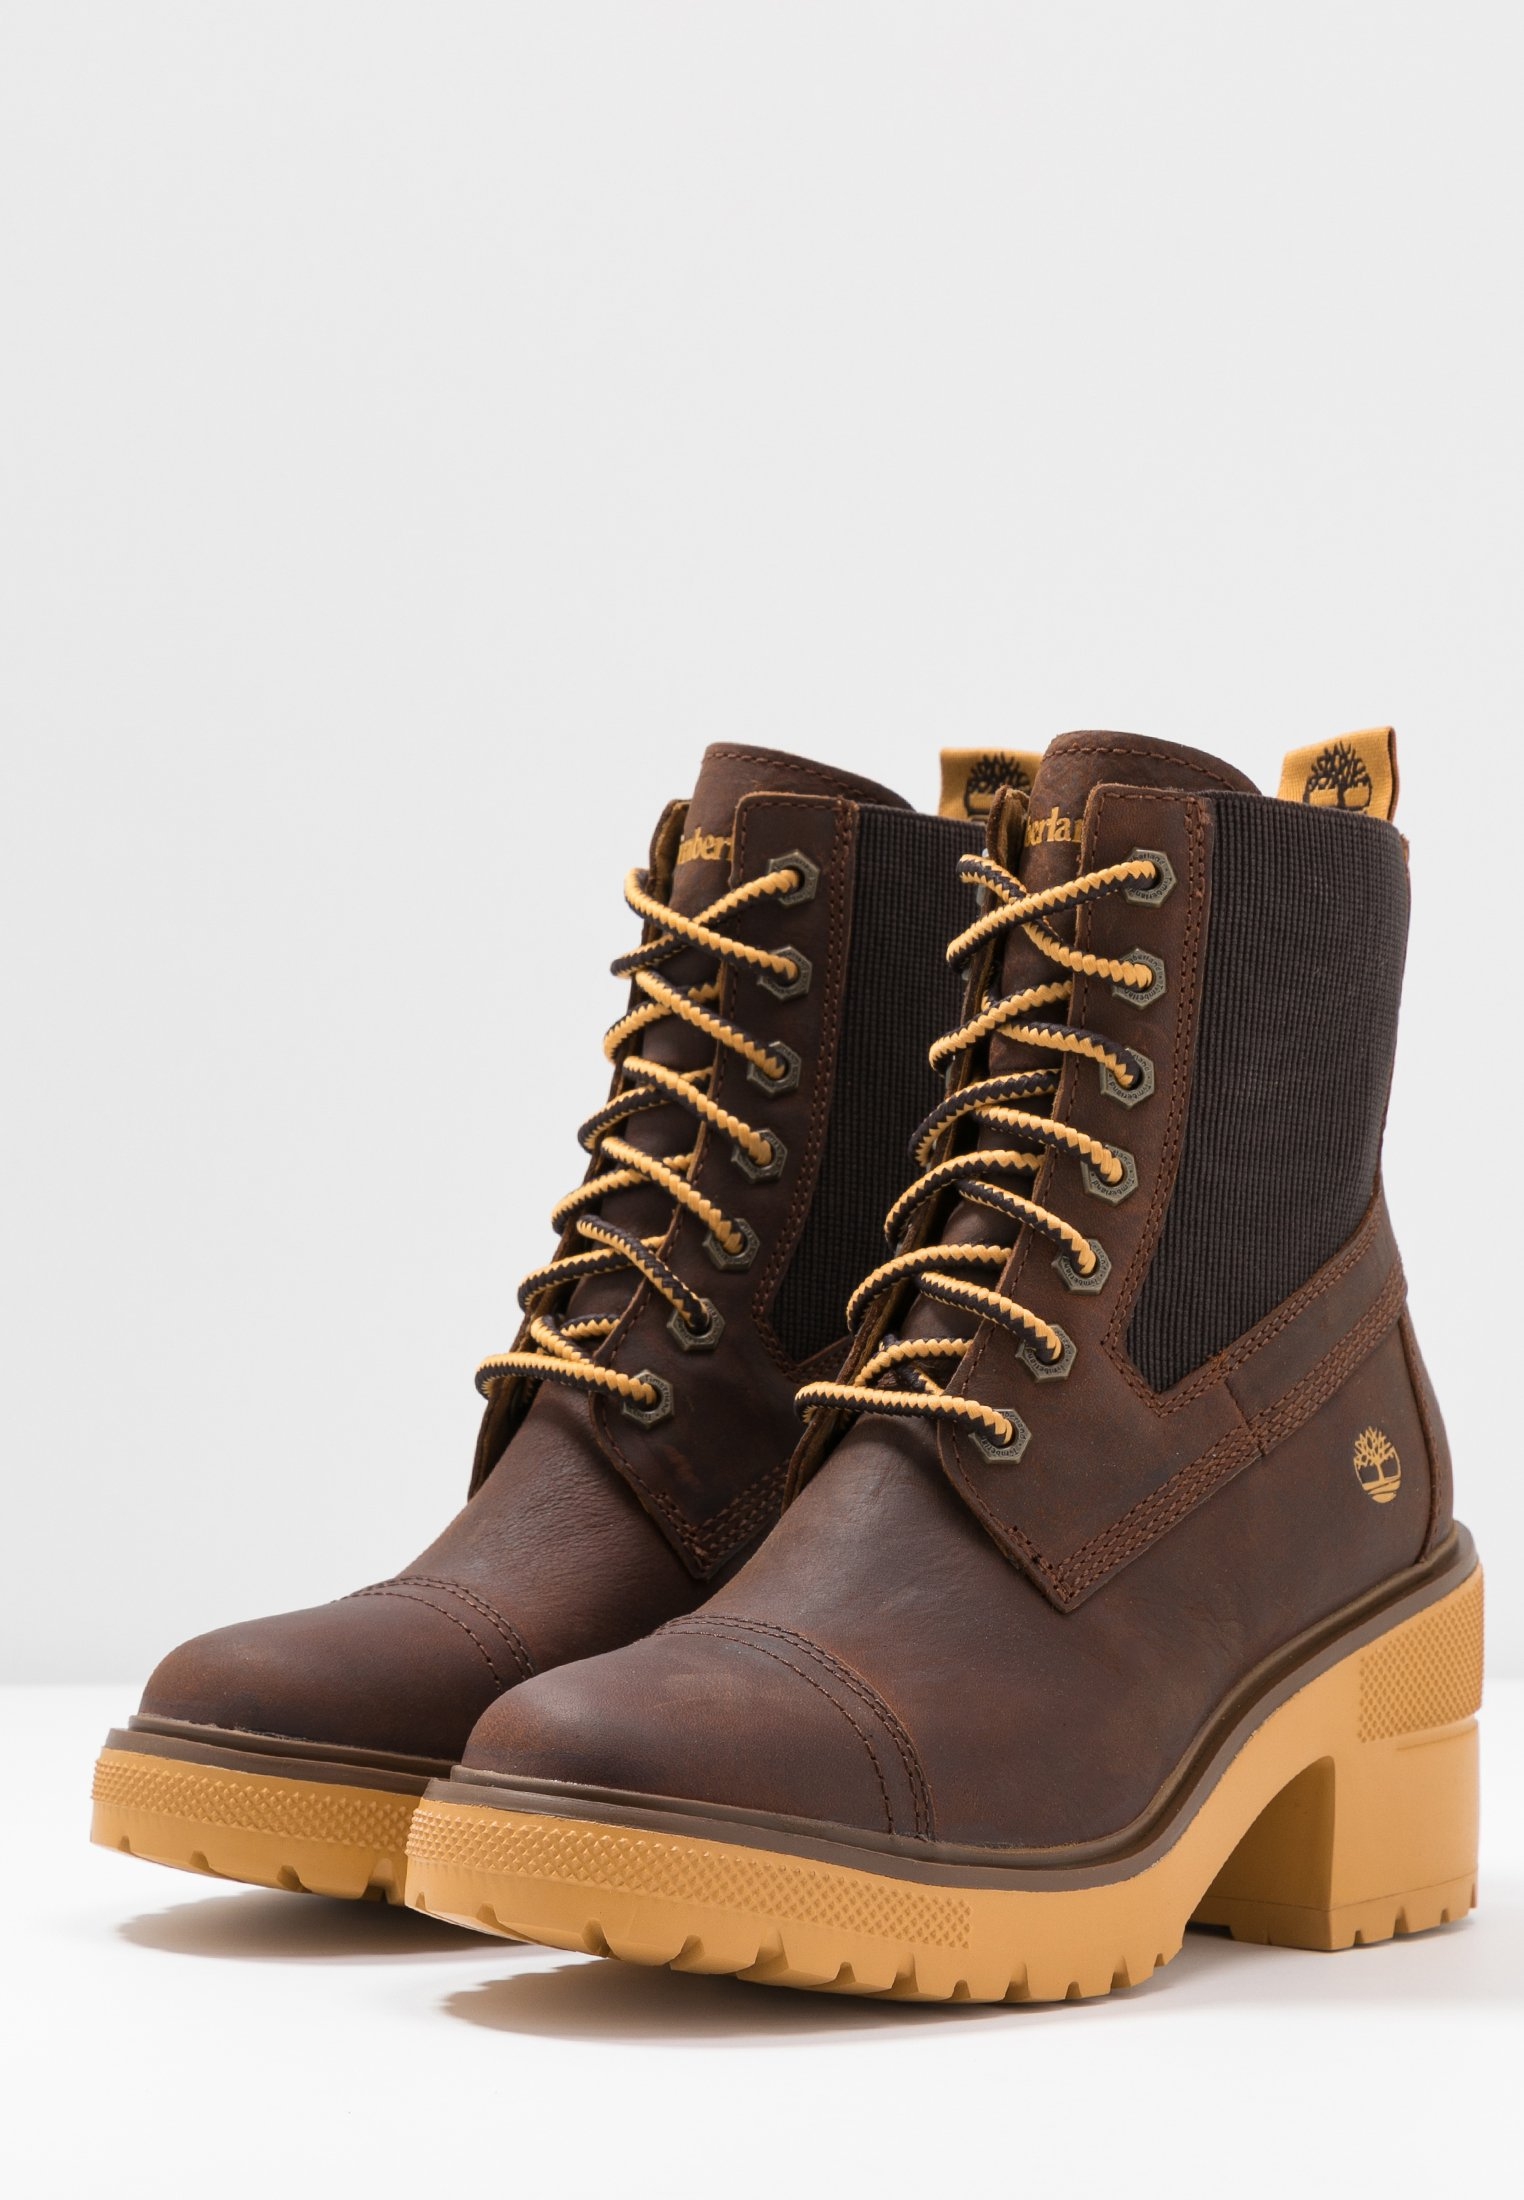 Timberland Silver Blossom Boots black ab 96,99